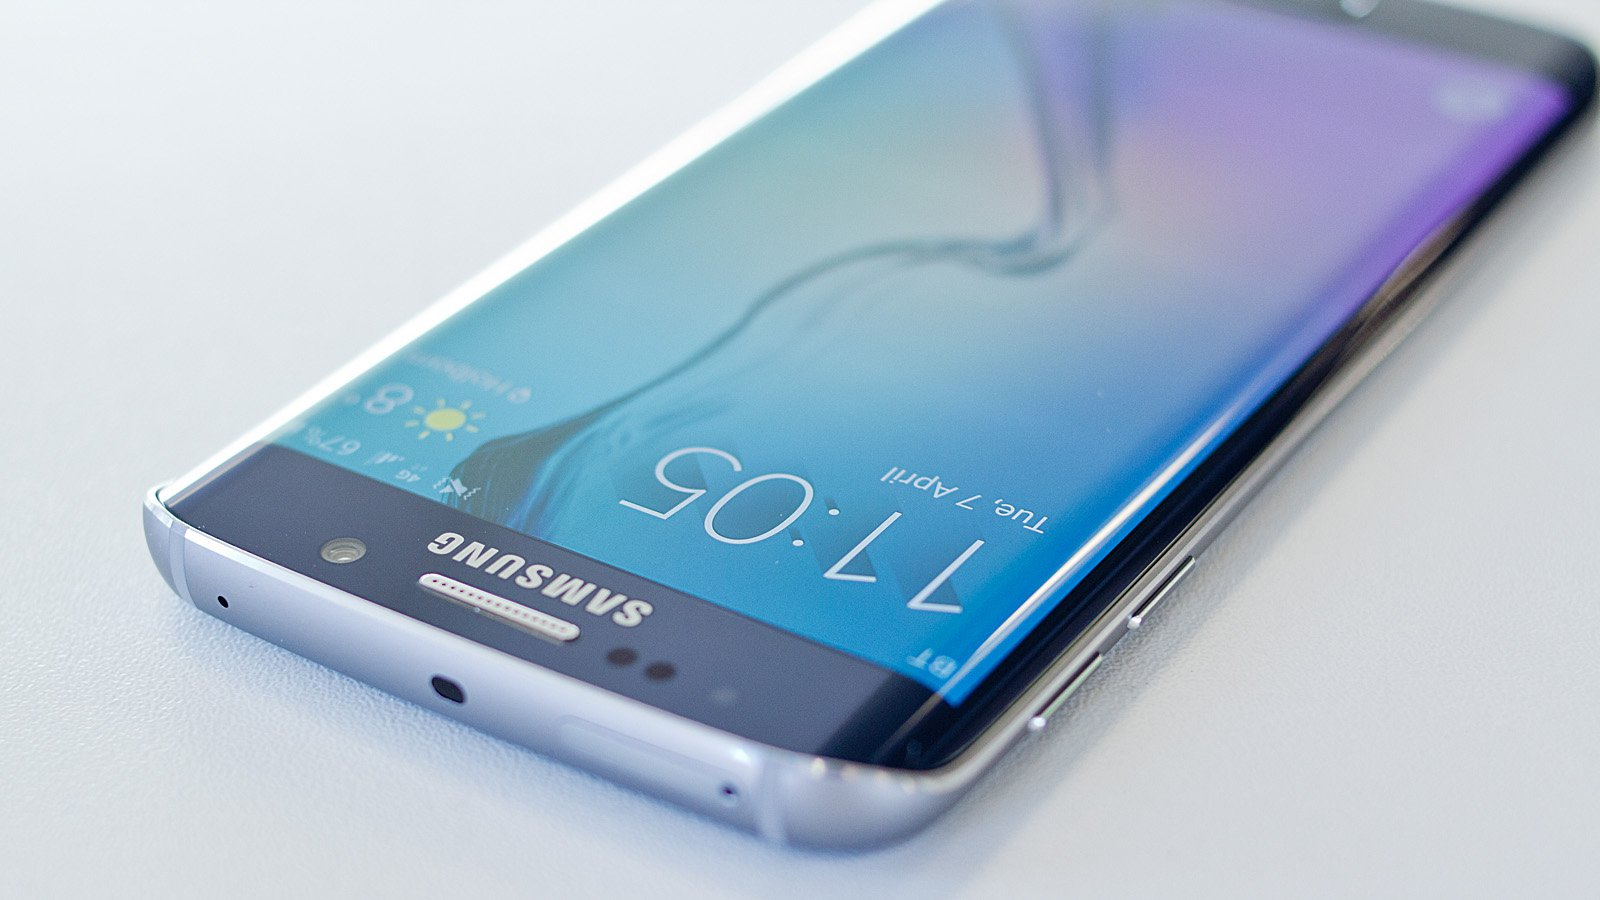 Samsung Galaxy S7 va fi mai rapid ca iPhone 6S